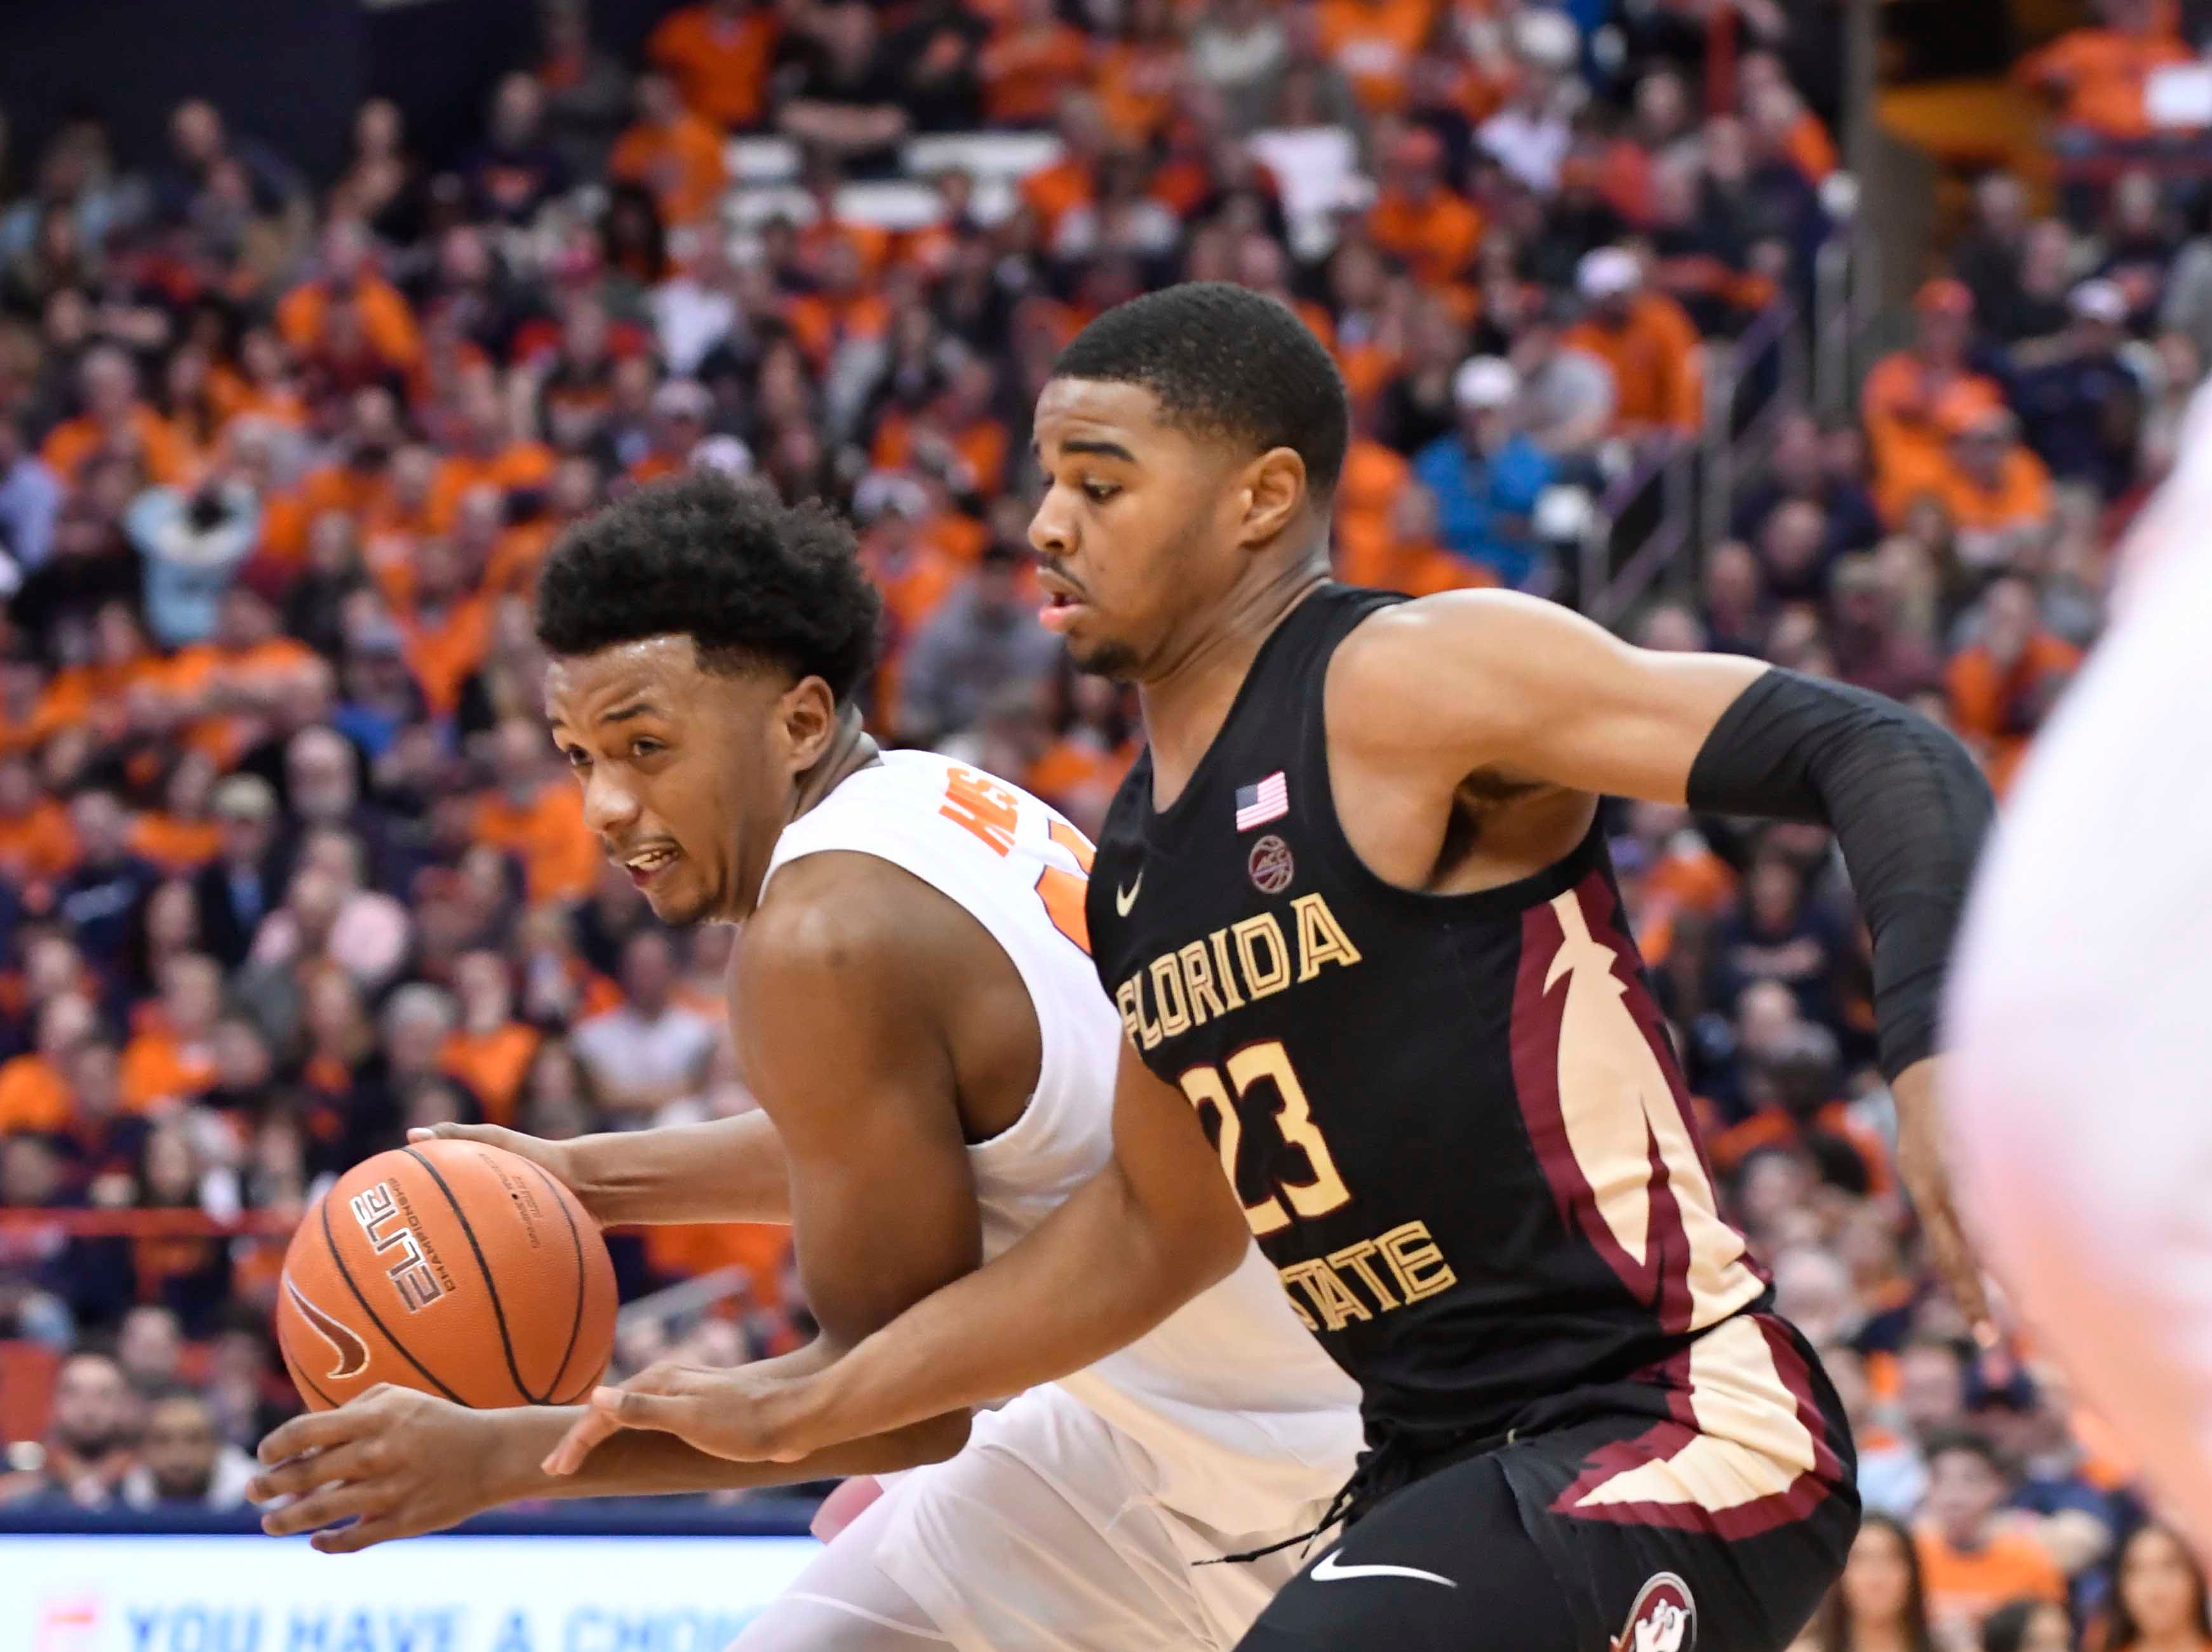 Feb 5, 2019; Syracuse, NY, USA; Syracuse Orange forward Elijah Hughes (33) drives the ball past Florida State Seminoles guard M.J. Walker (23) in the second half at the Carrier Dome. Mandatory Credit: Mark Konezny-USA TODAY Sports